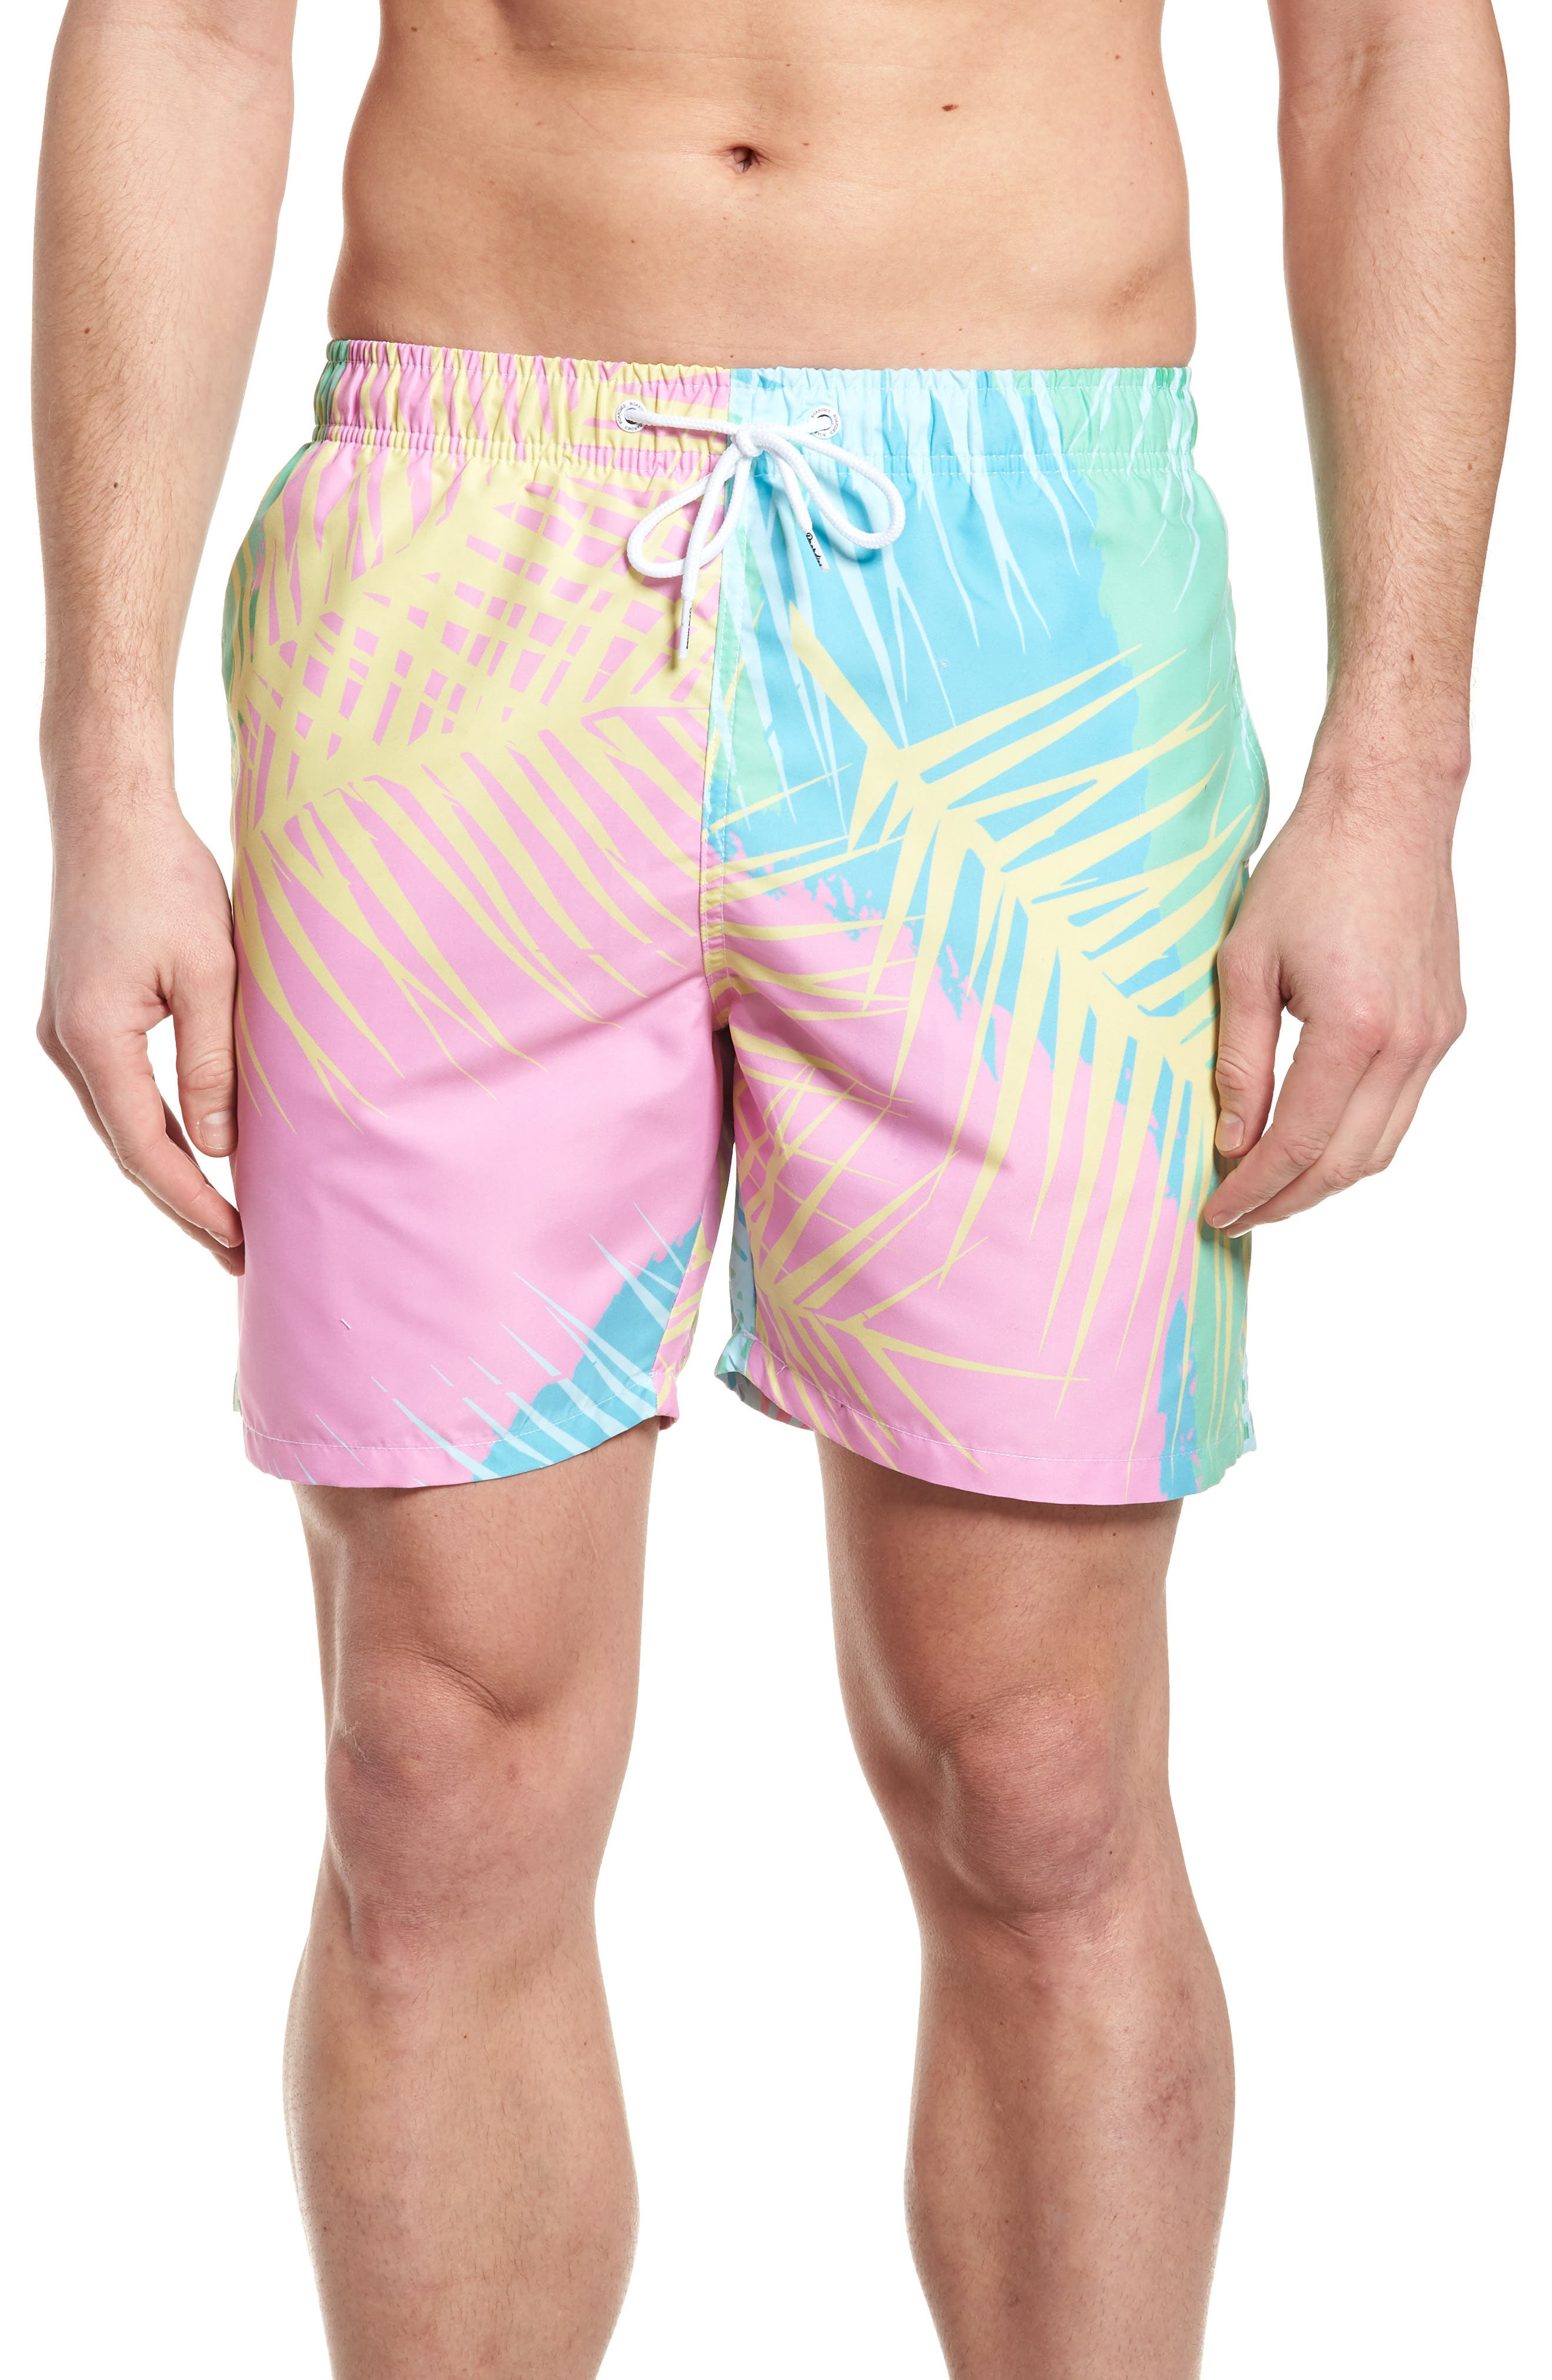 Tropicano Swim Trunks,                         Main,                         color, 650